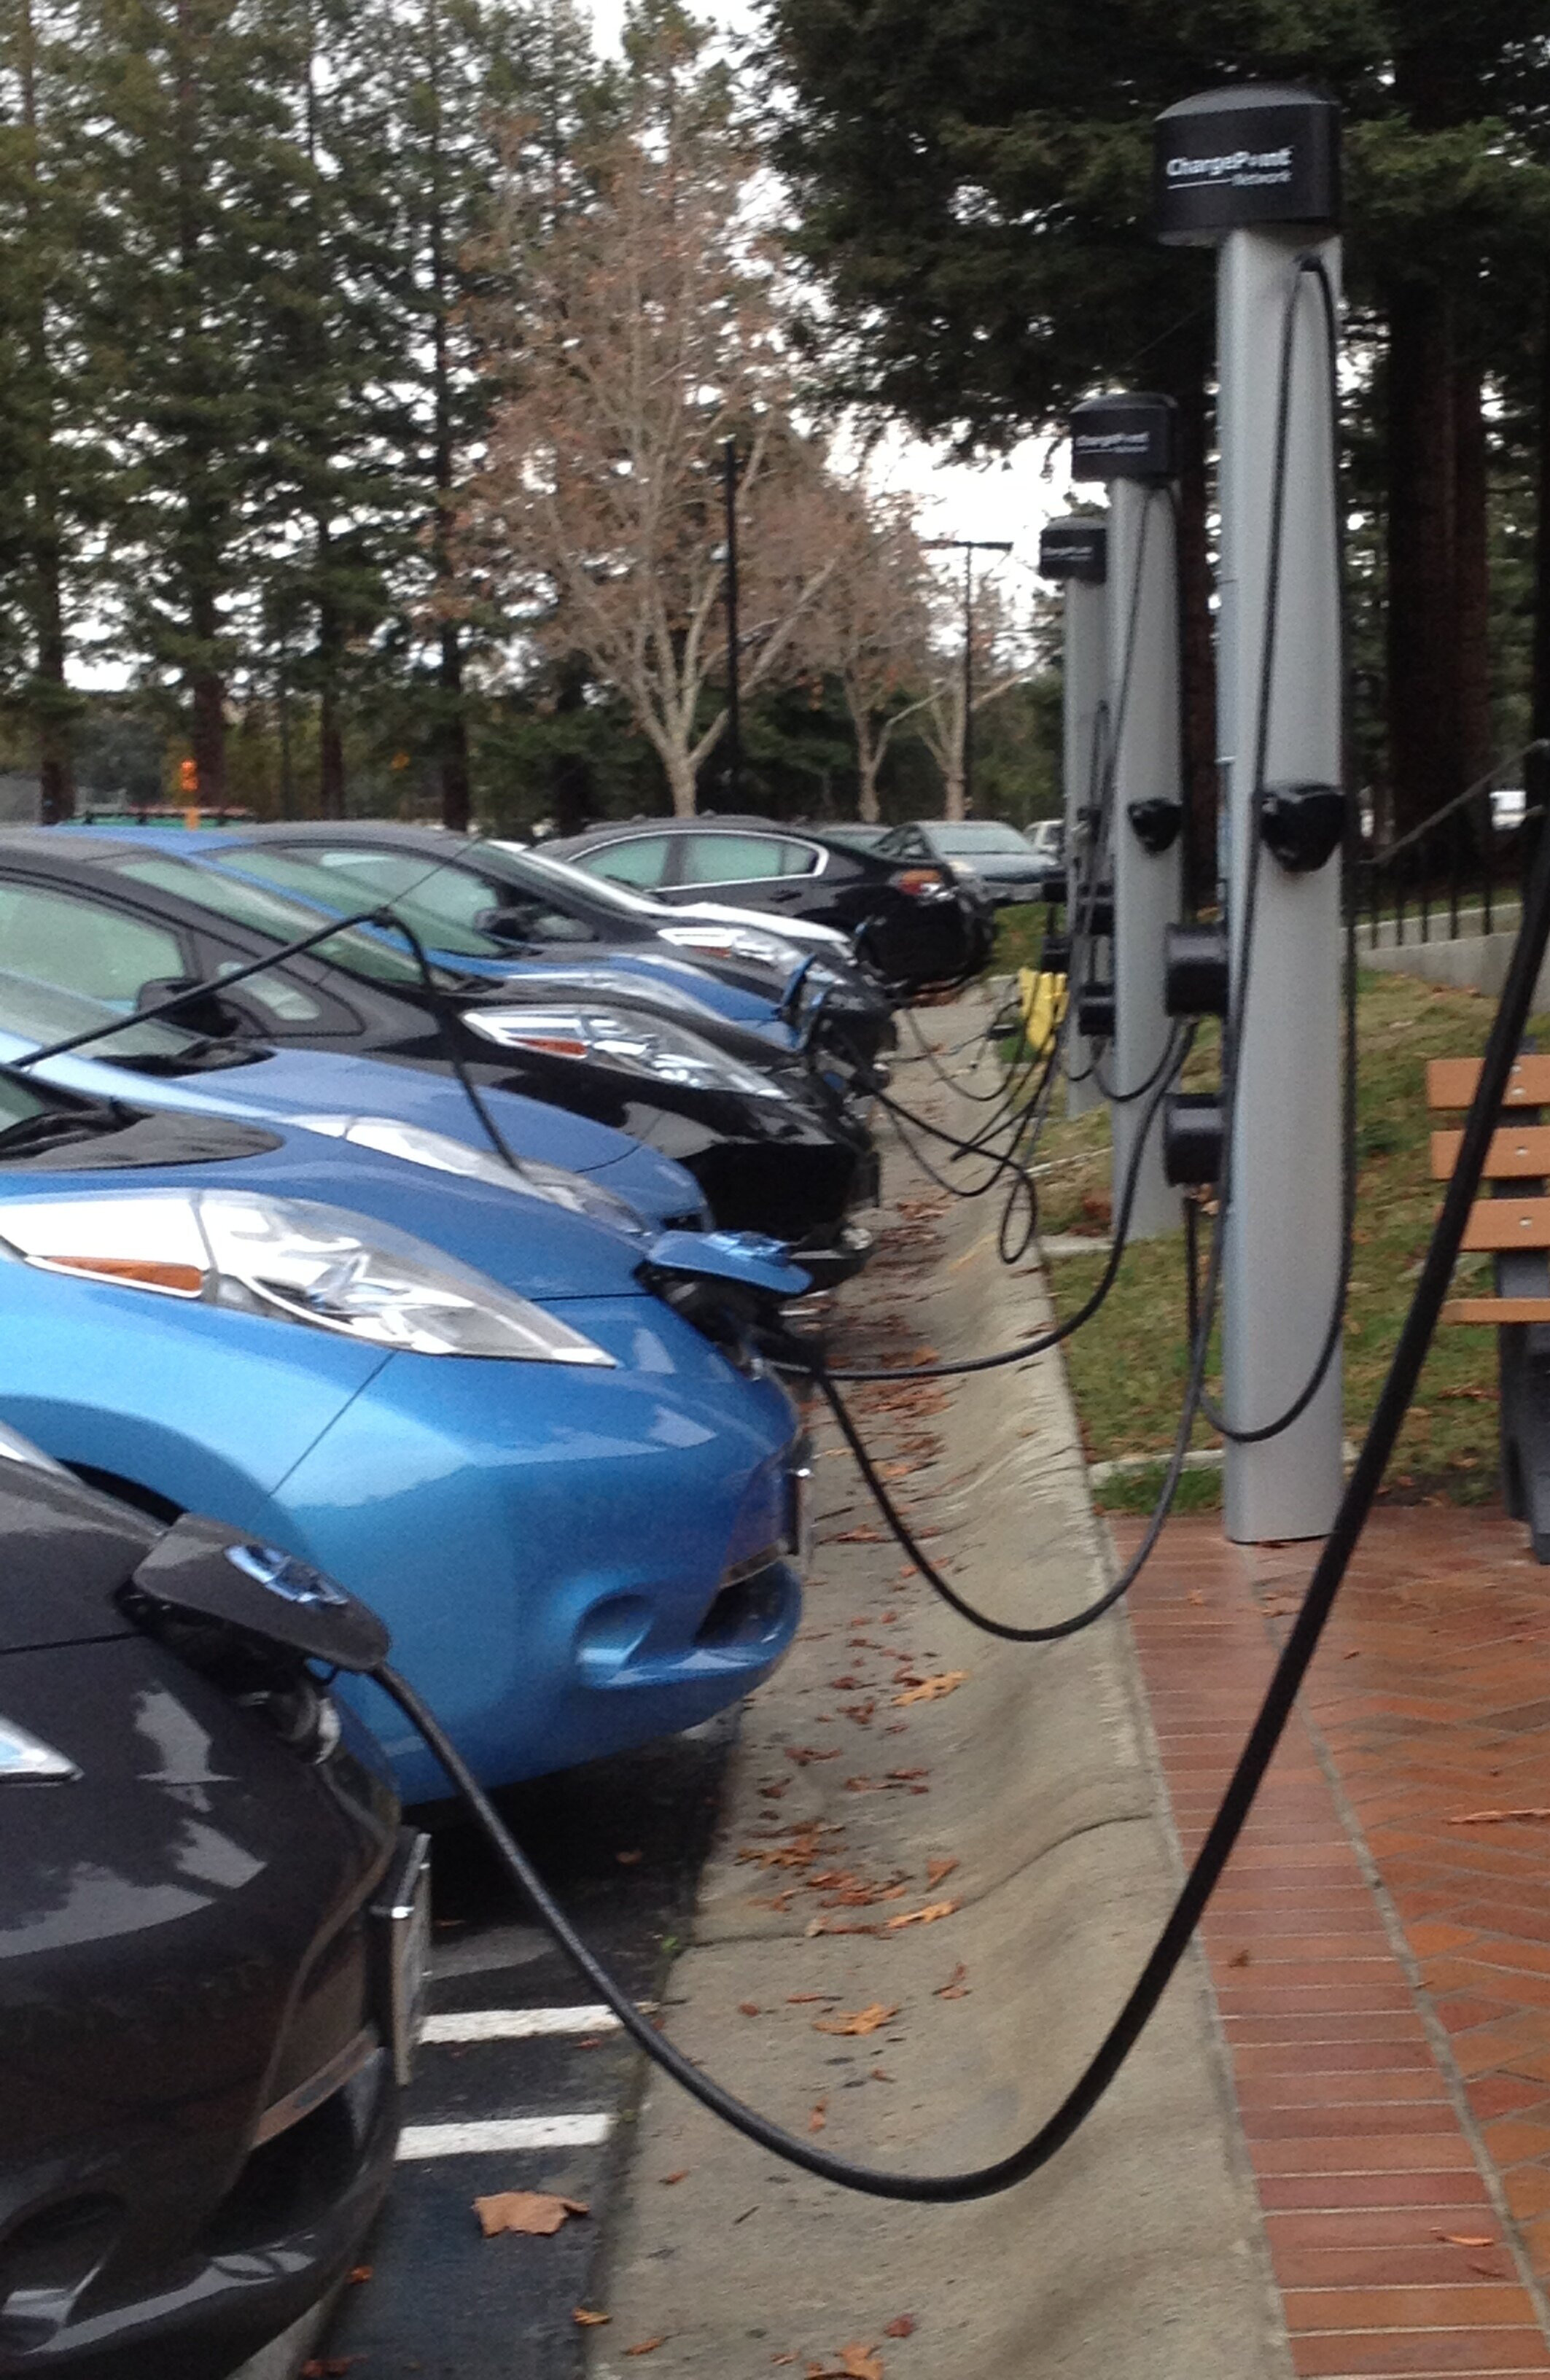 Along with generous subsidies offered to California drivers to purchase EVs has come….more vehicle miles traveled. Photo: Julie Campoli